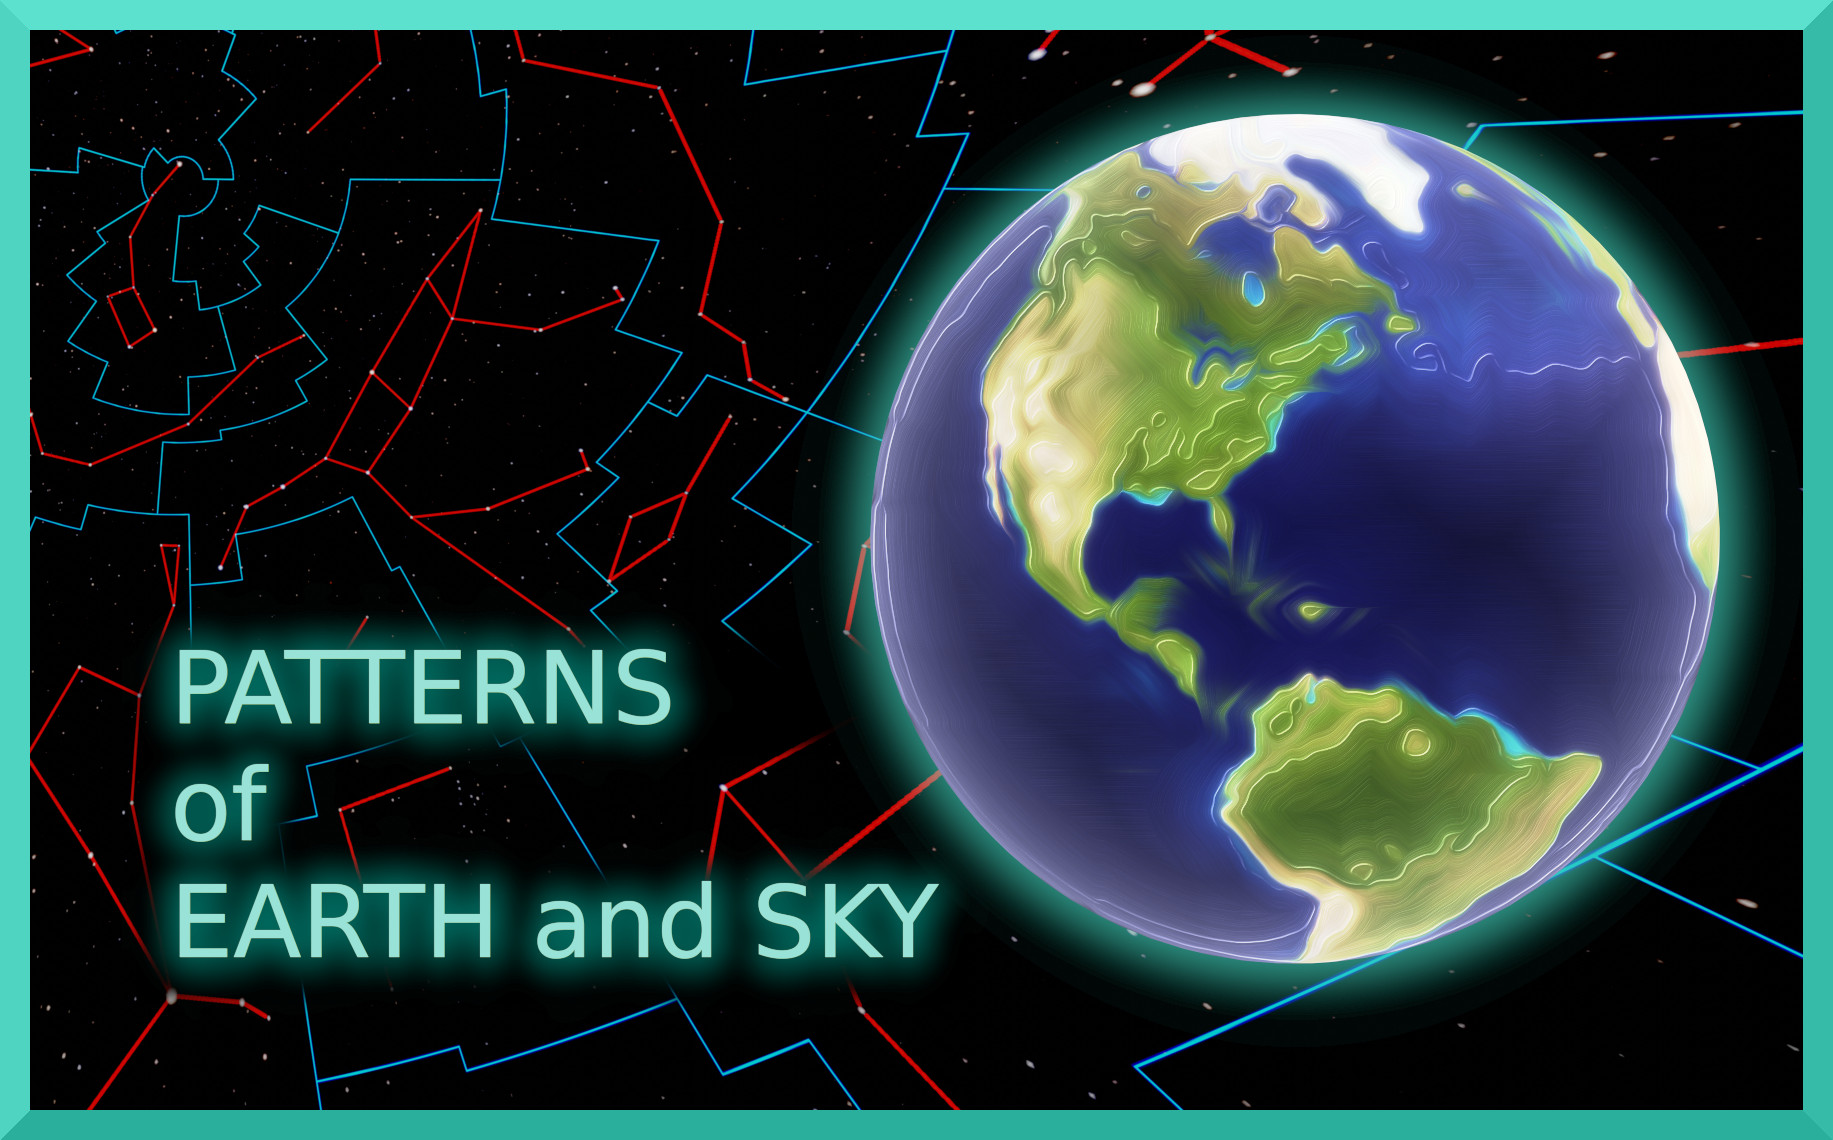 Patterns of Earth and Sky